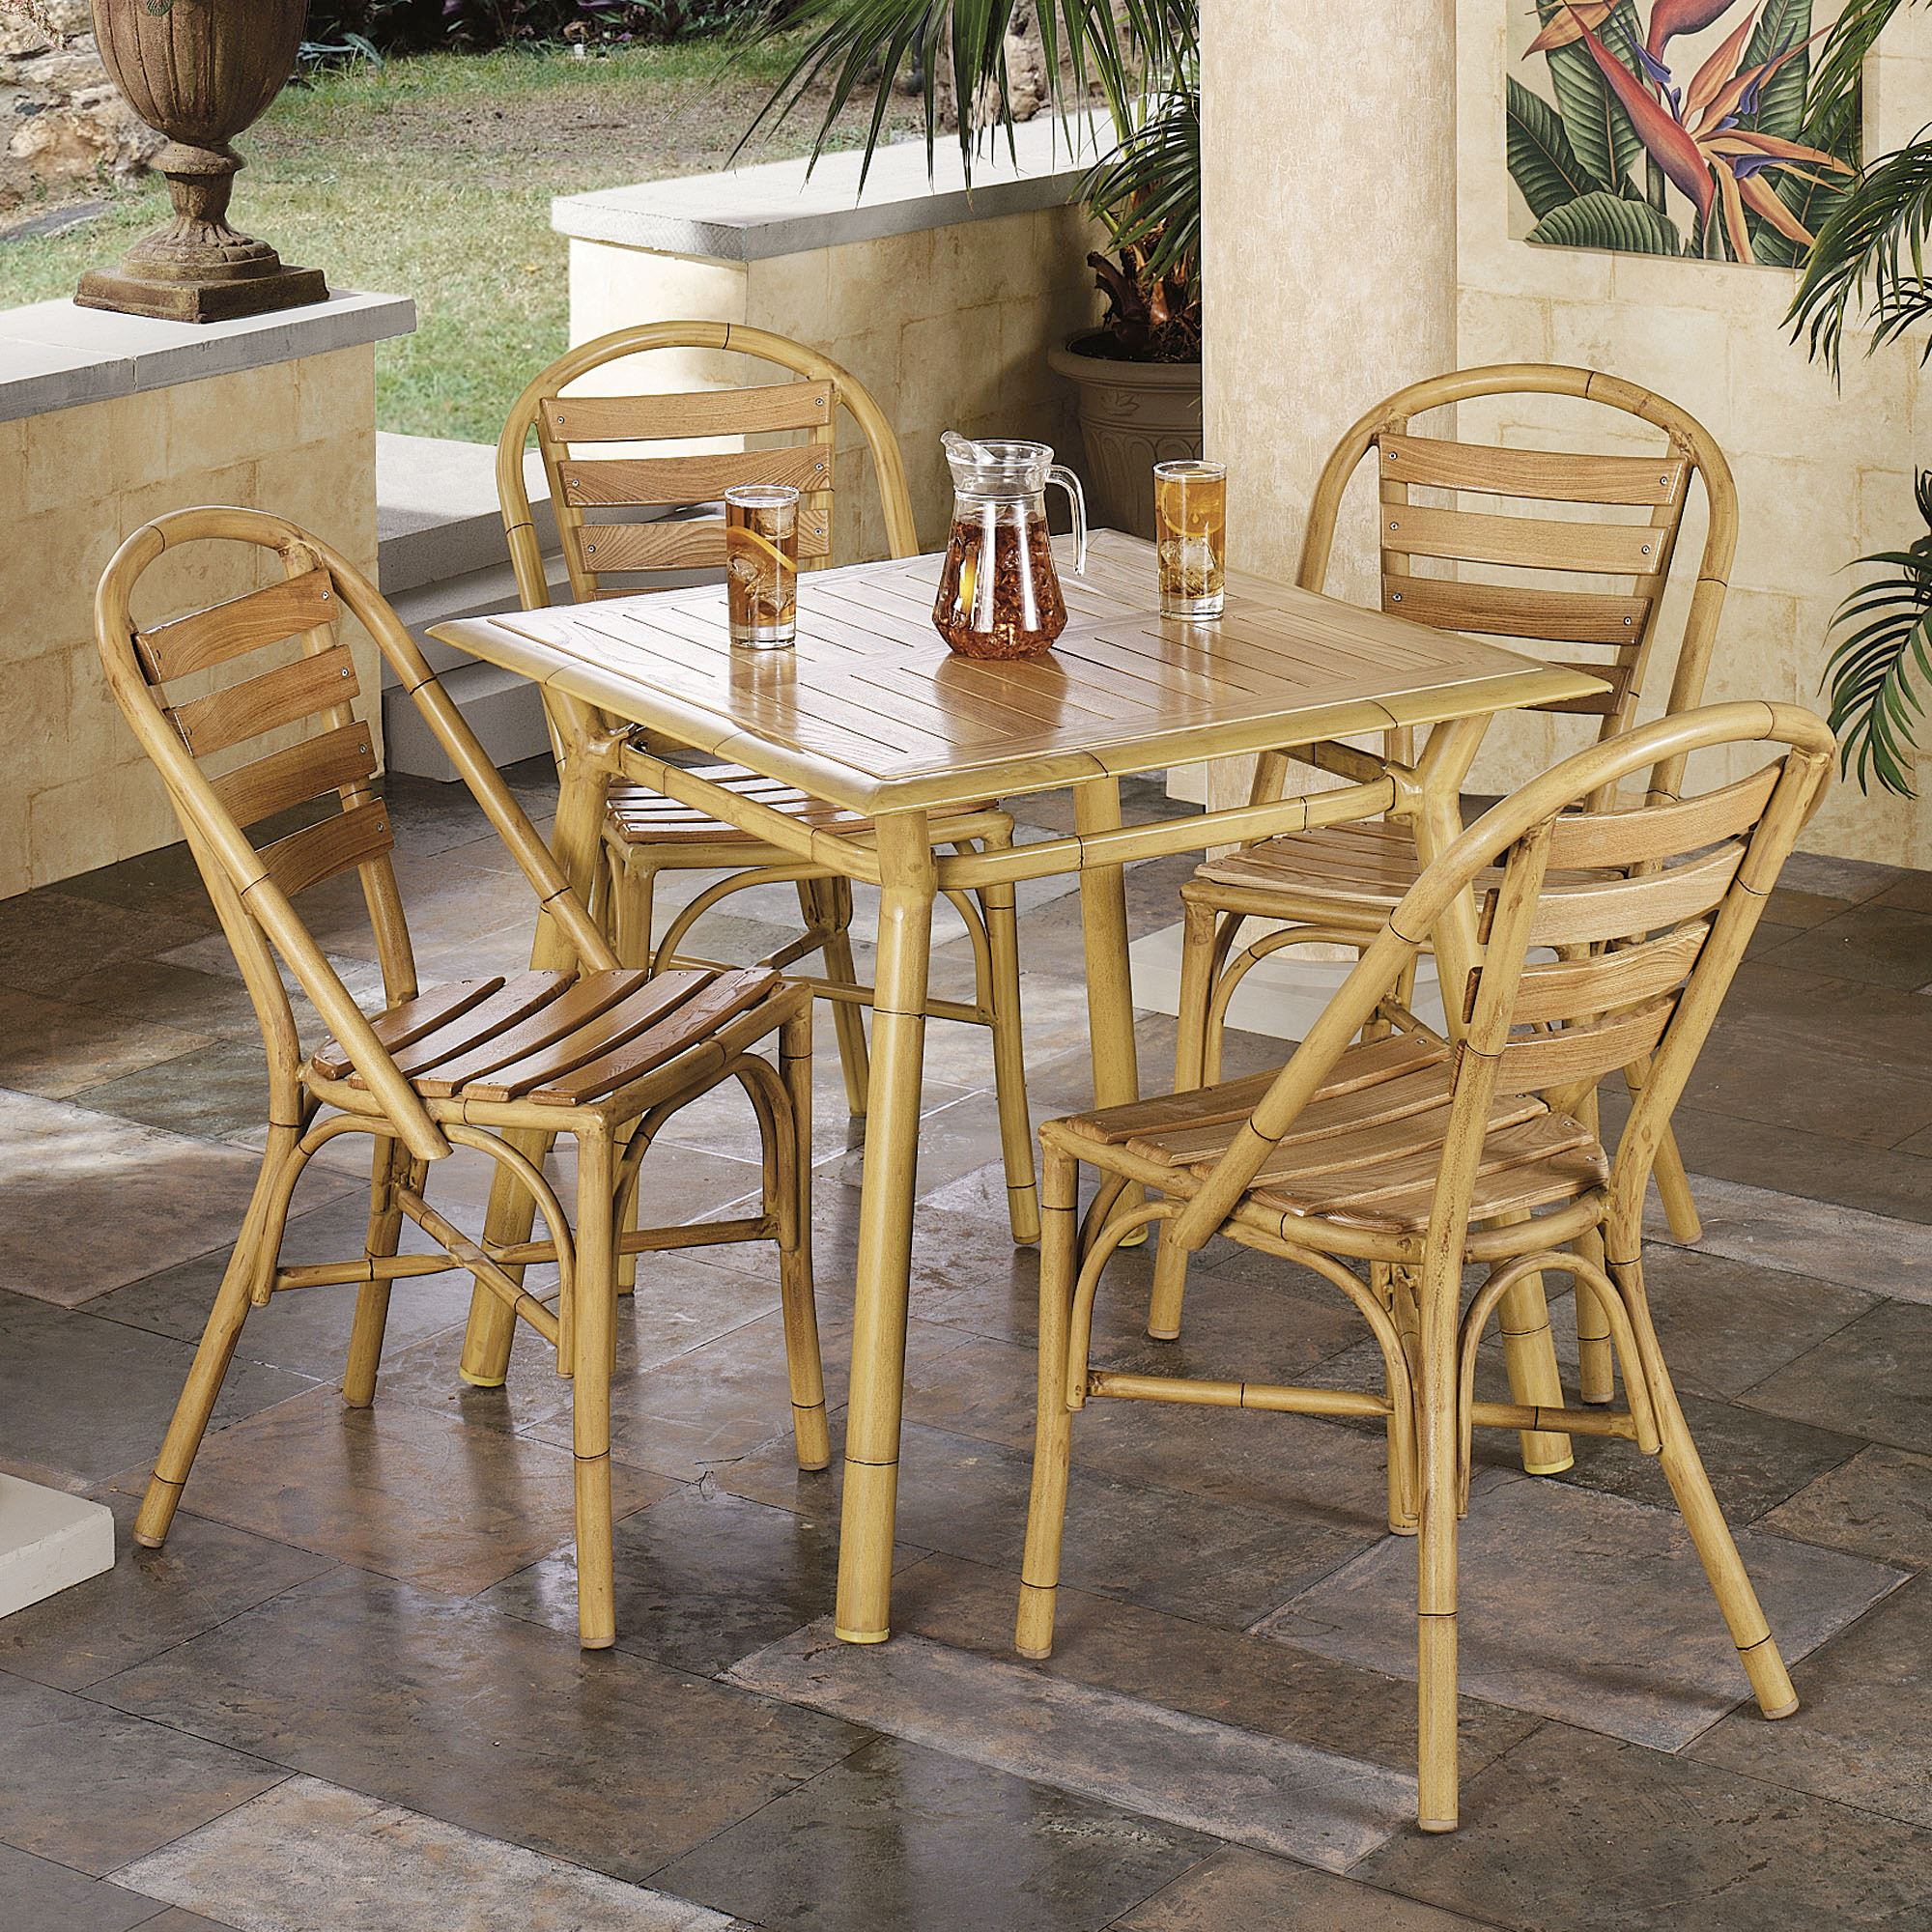 furniture dining patio ch outdoor chairs